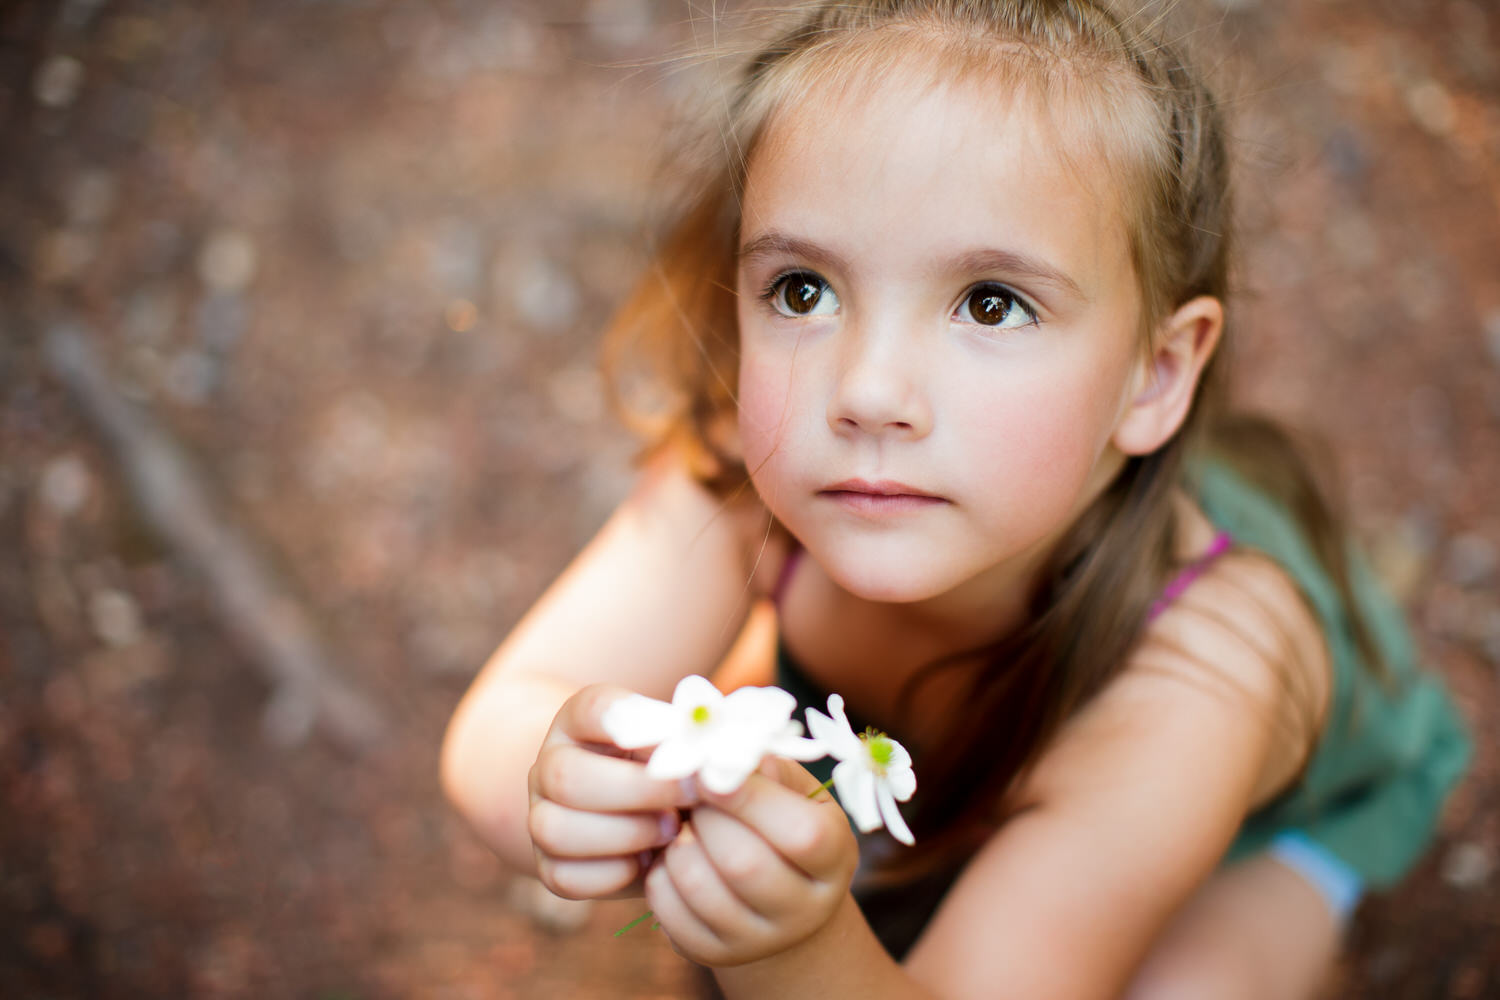 a young girl showing a flower during an outdoor Calgary photography shoot